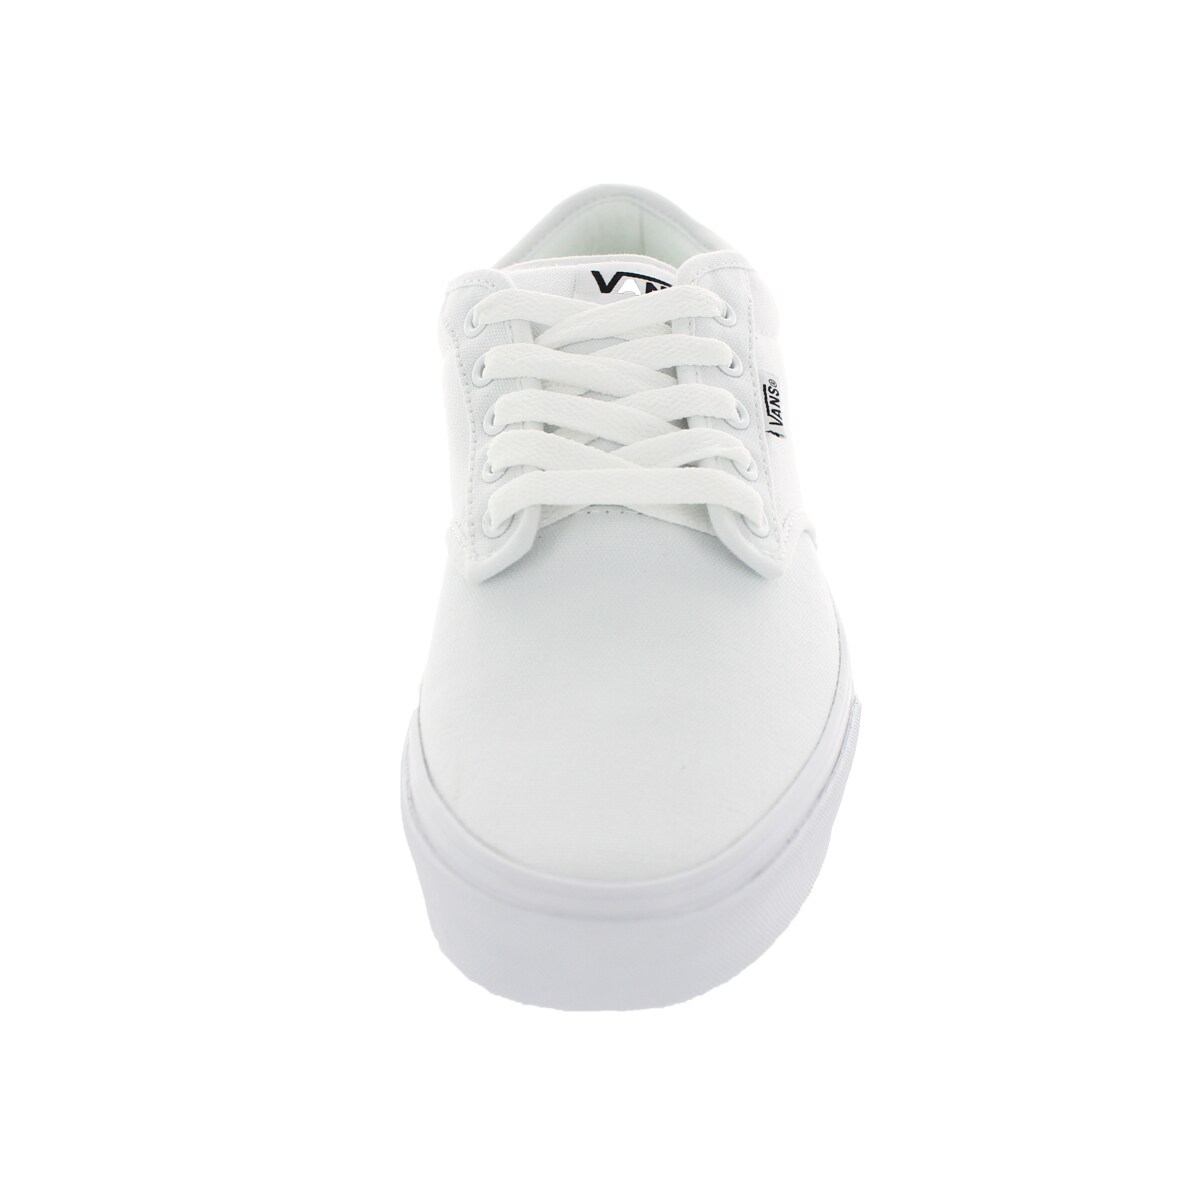 daeab87a4ef7 Shop Vans Men s Atwood White Canvas Skate Shoe - Free Shipping Today -  Overstock - 12115555